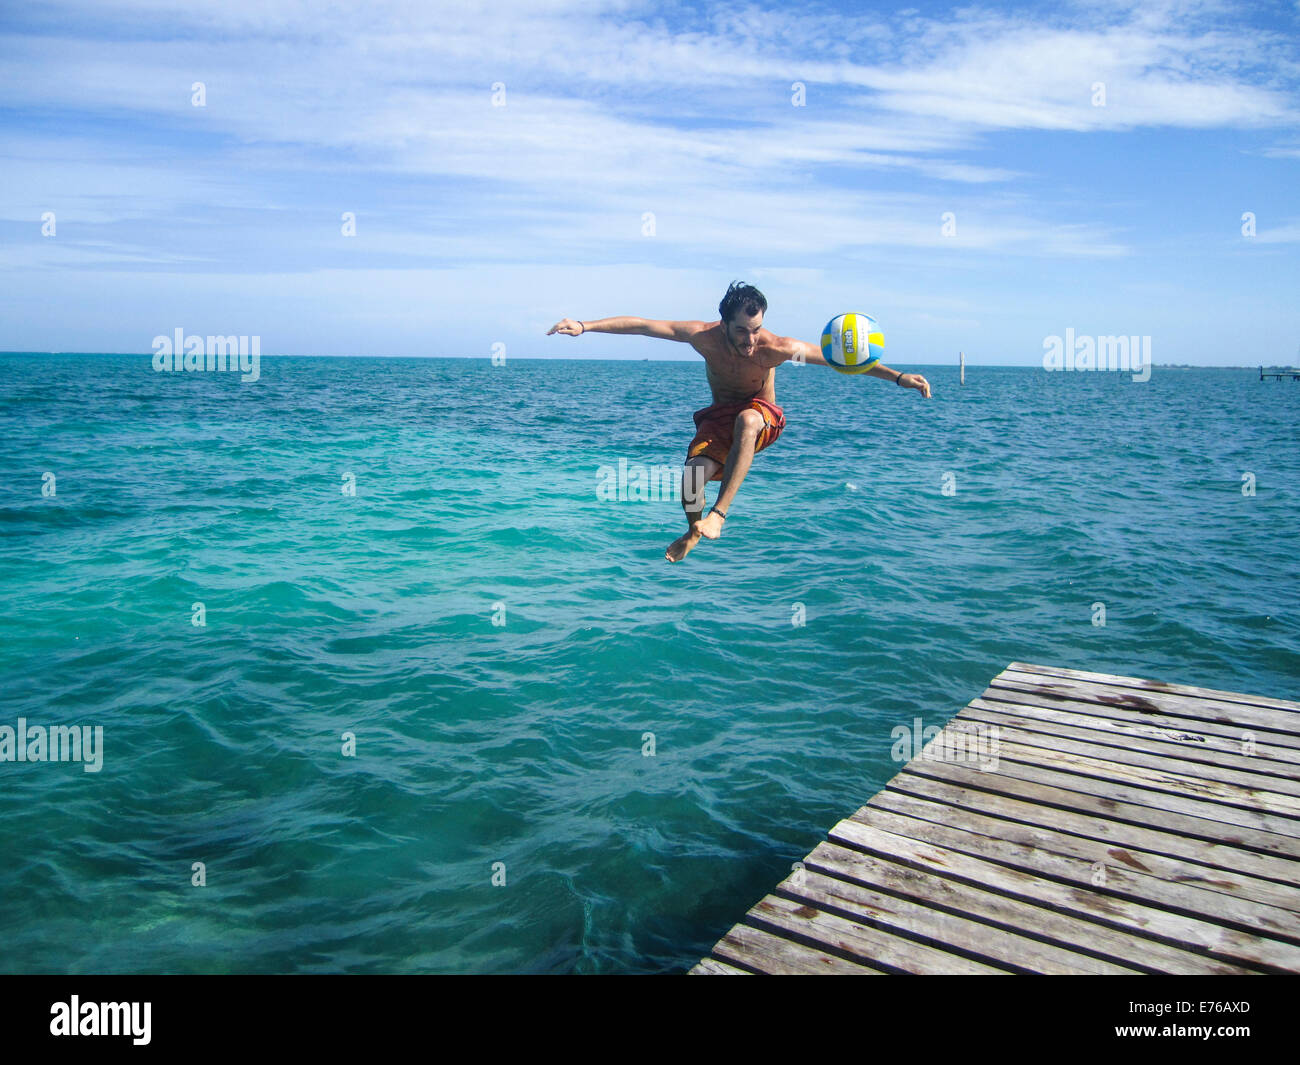 young man jumps off a pier while kicking a football Photographed in Caye Caulker, Belize - Stock Image